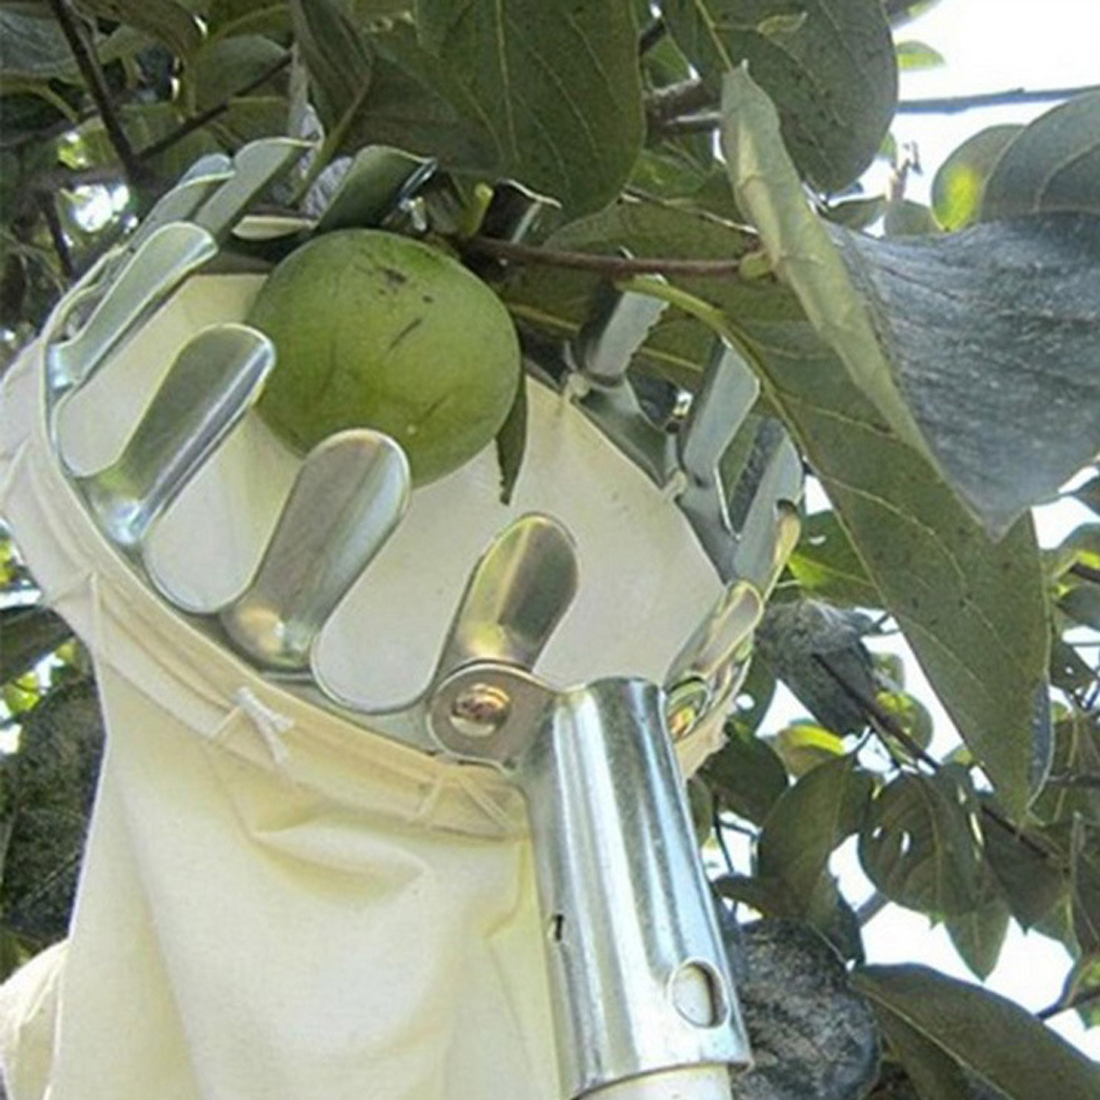 Garden Tool Metal Fruit Picker Convenient Fabric Orchard Gardening For Apple Peach High Tree Picking Tools